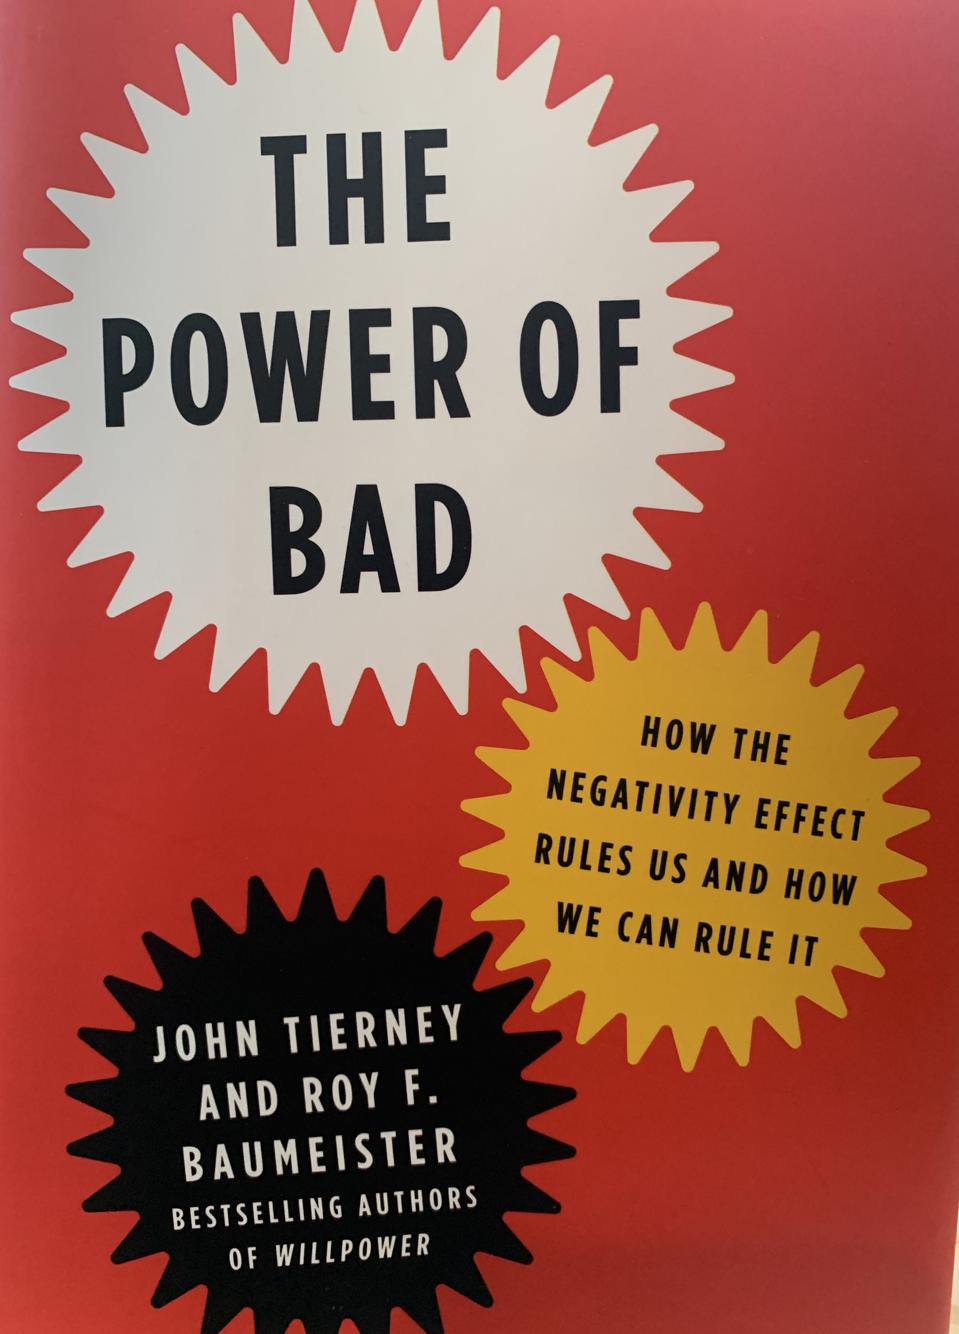 The Power of Bad by John Tierney and Roy F. Baumeister